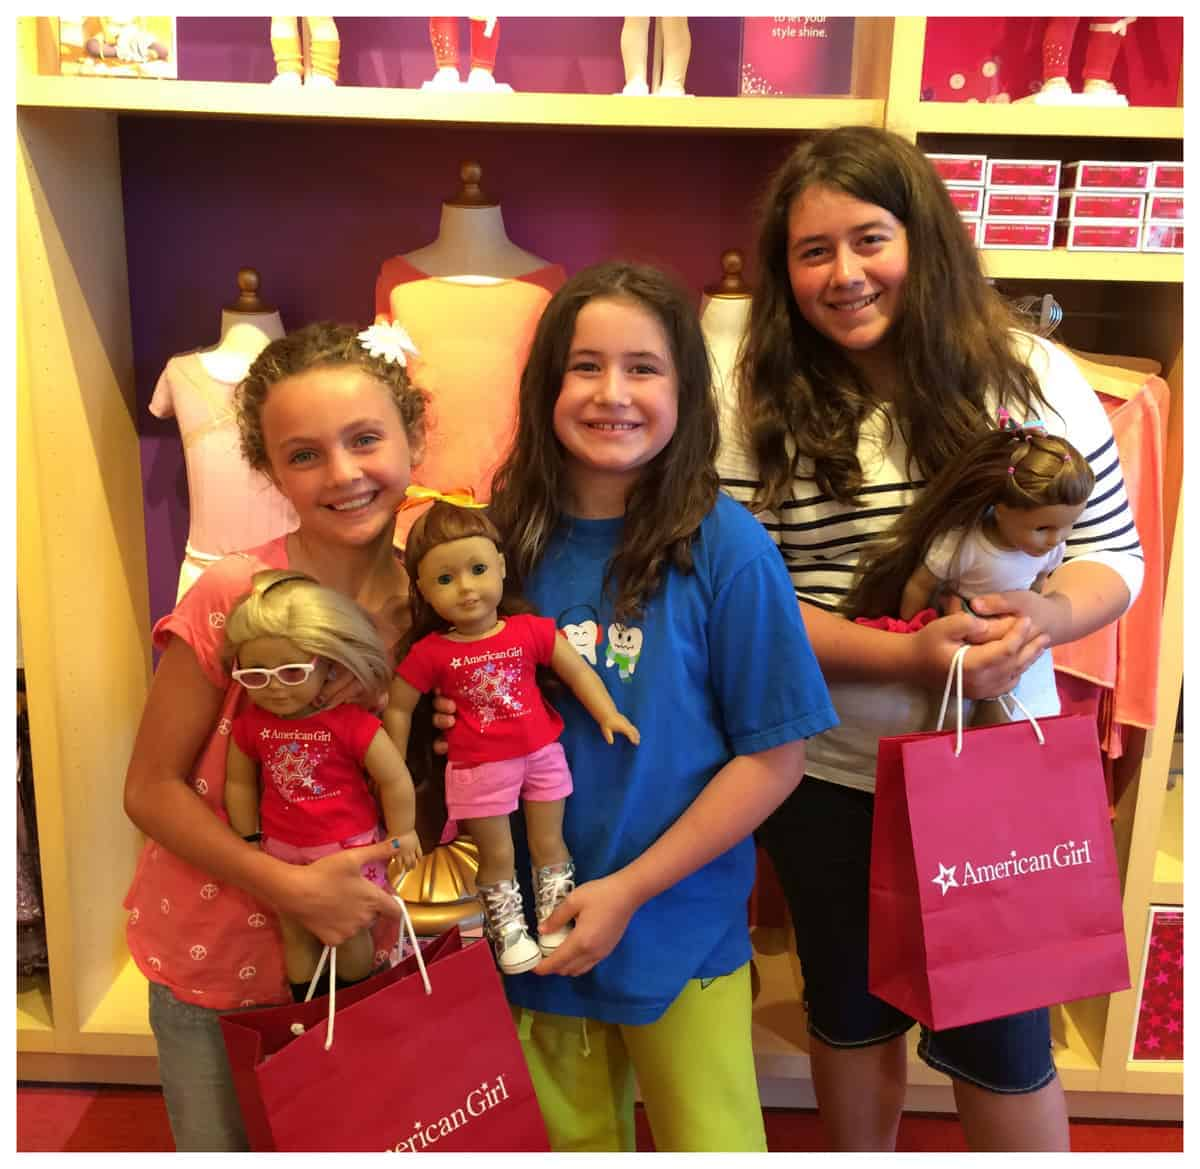 Visit the American Girl® store at Stanford Shopping Center #americangirl